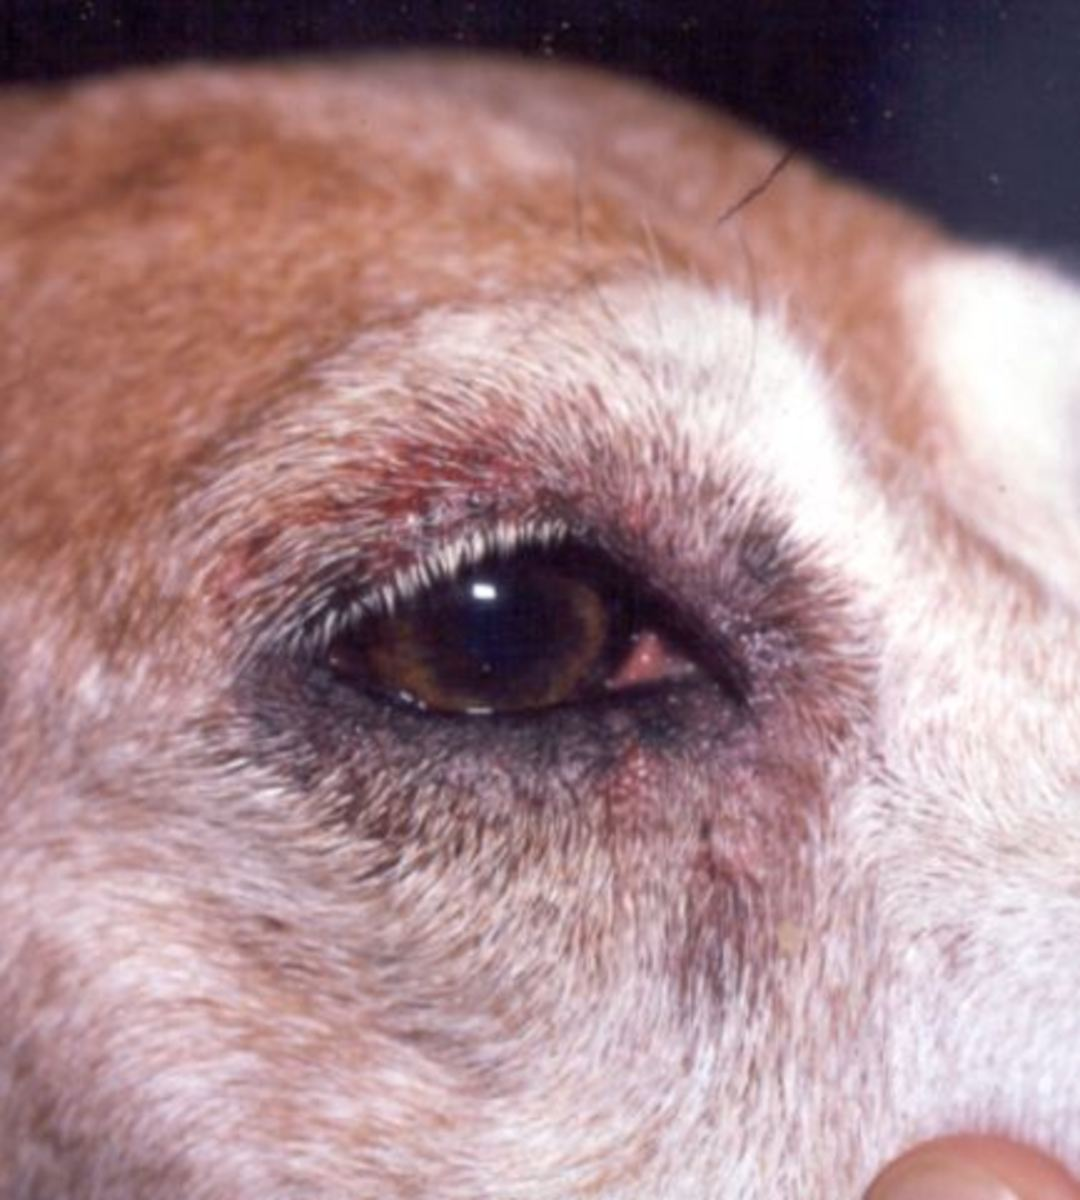 A case of canine atopy